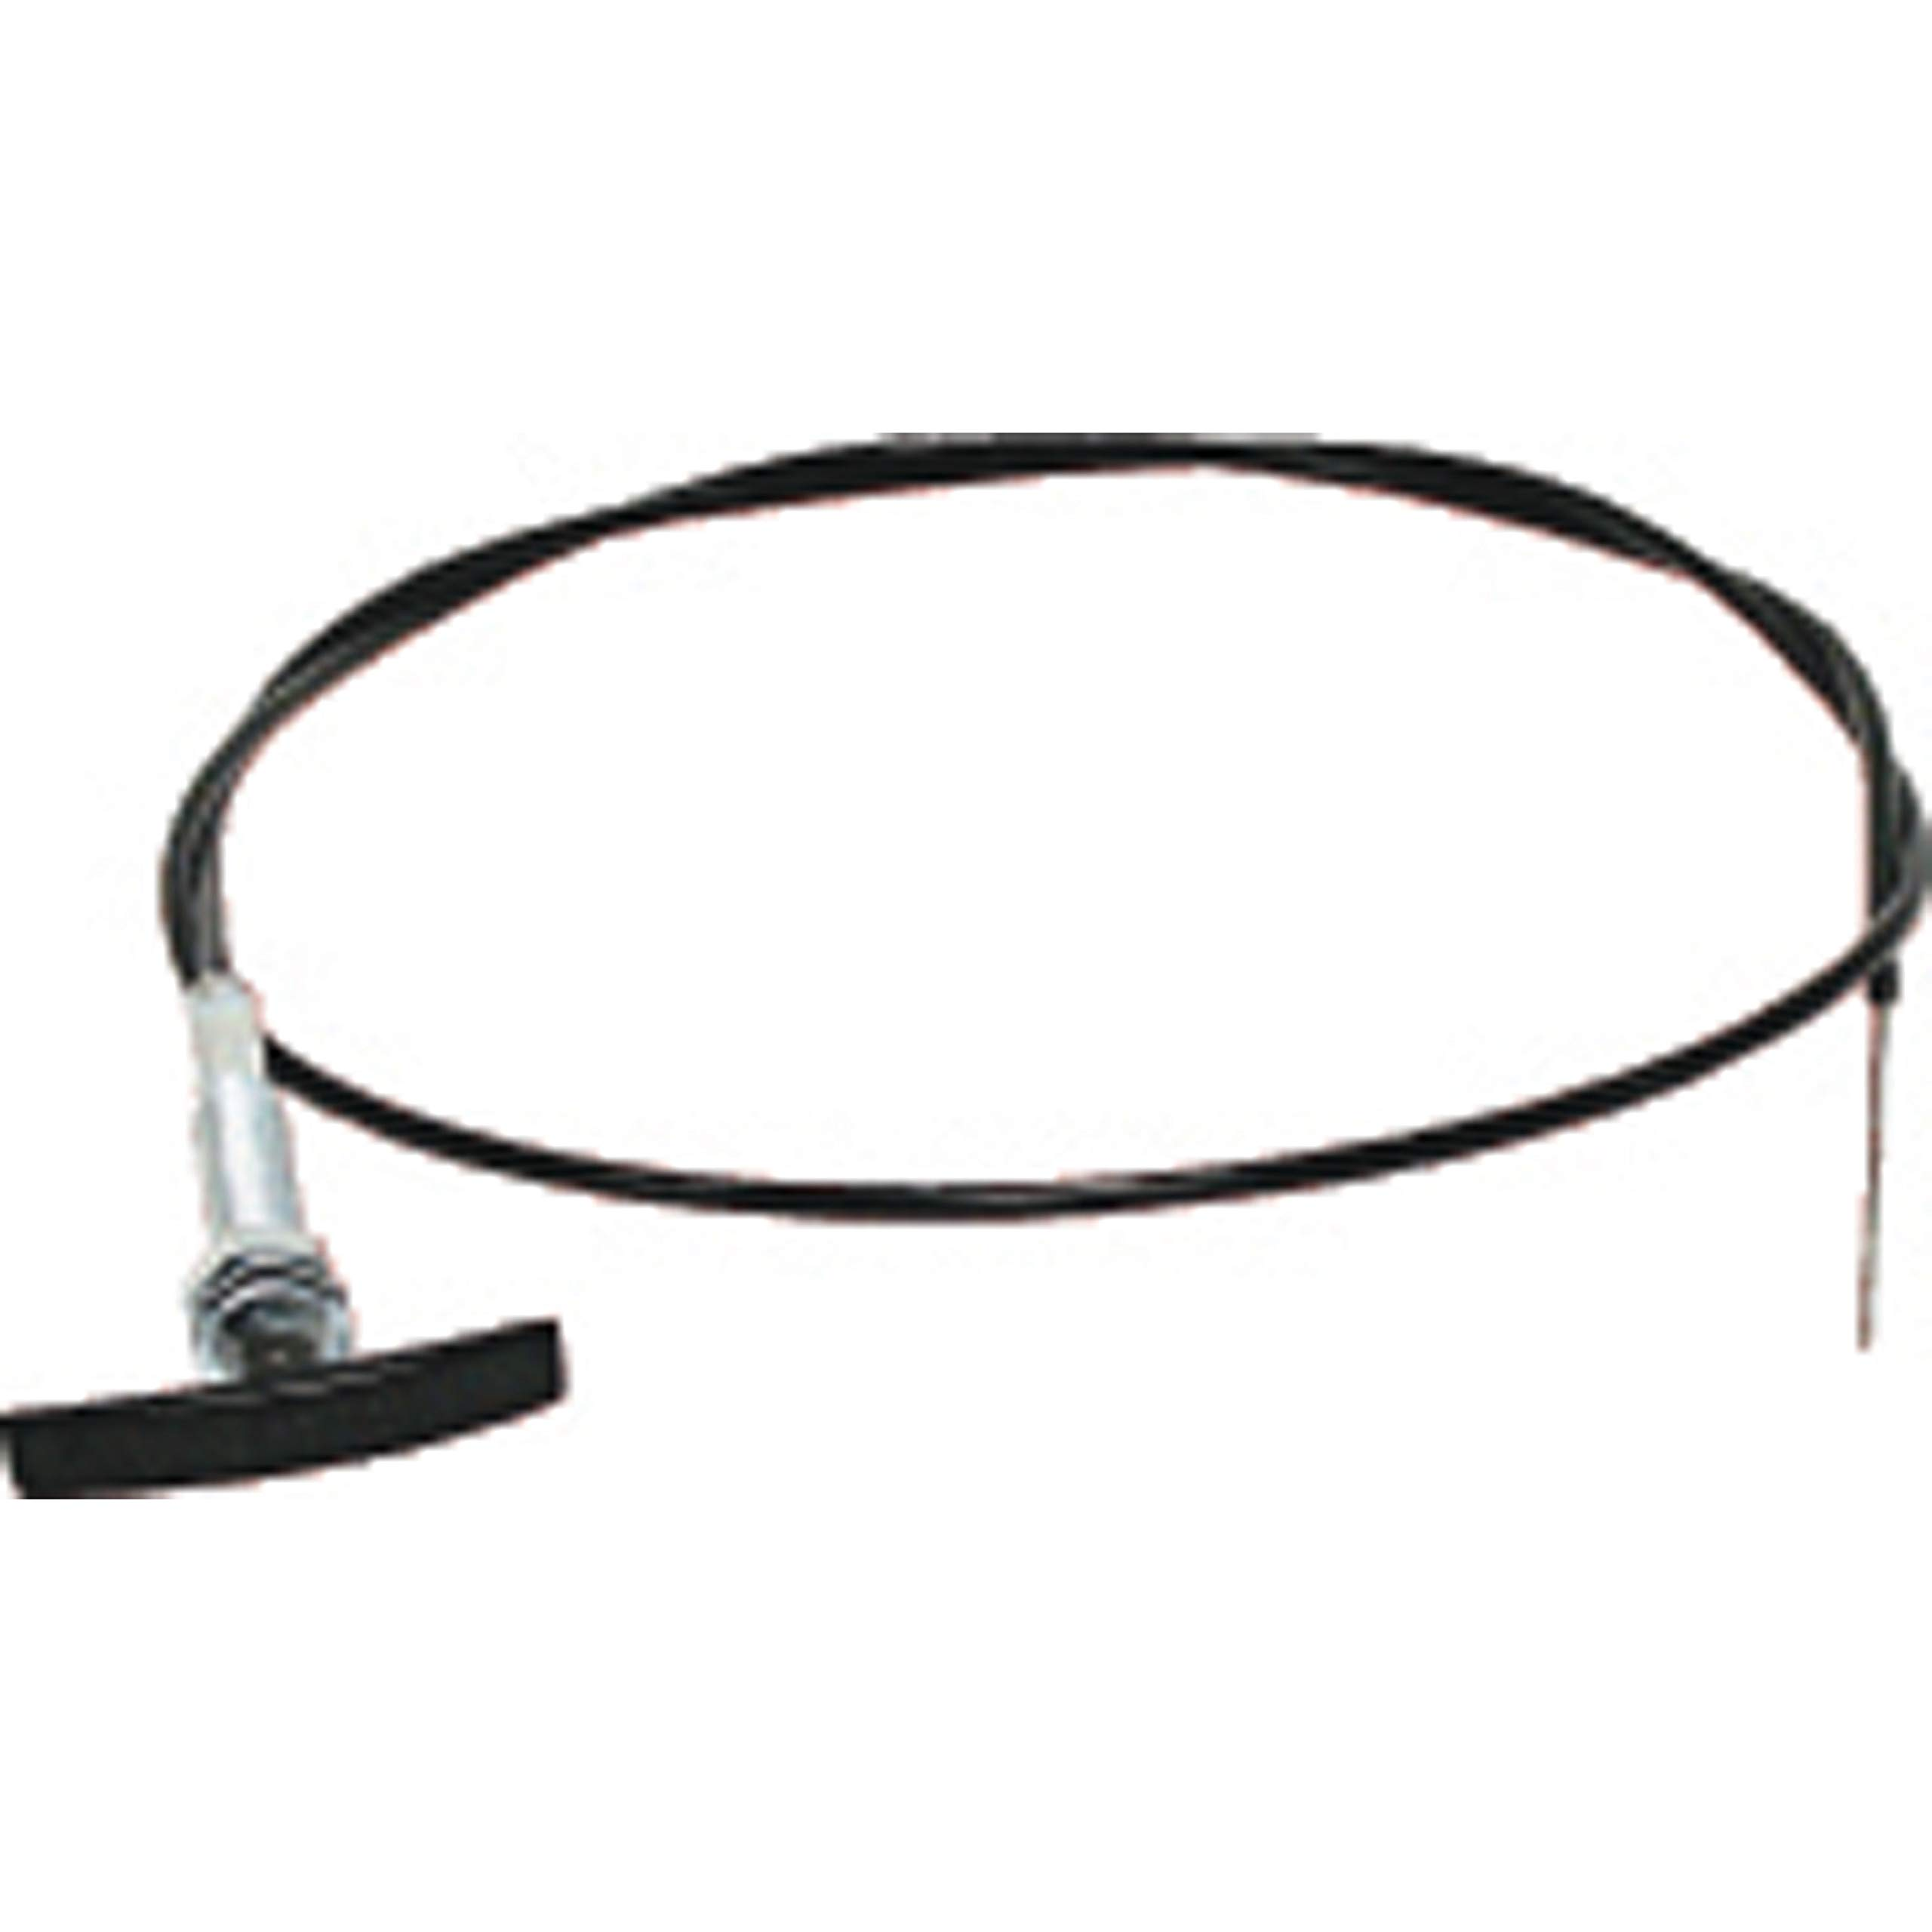 Valterra TC120PB Waste Valve Cable with Valve Handle - 120'' by Valterra